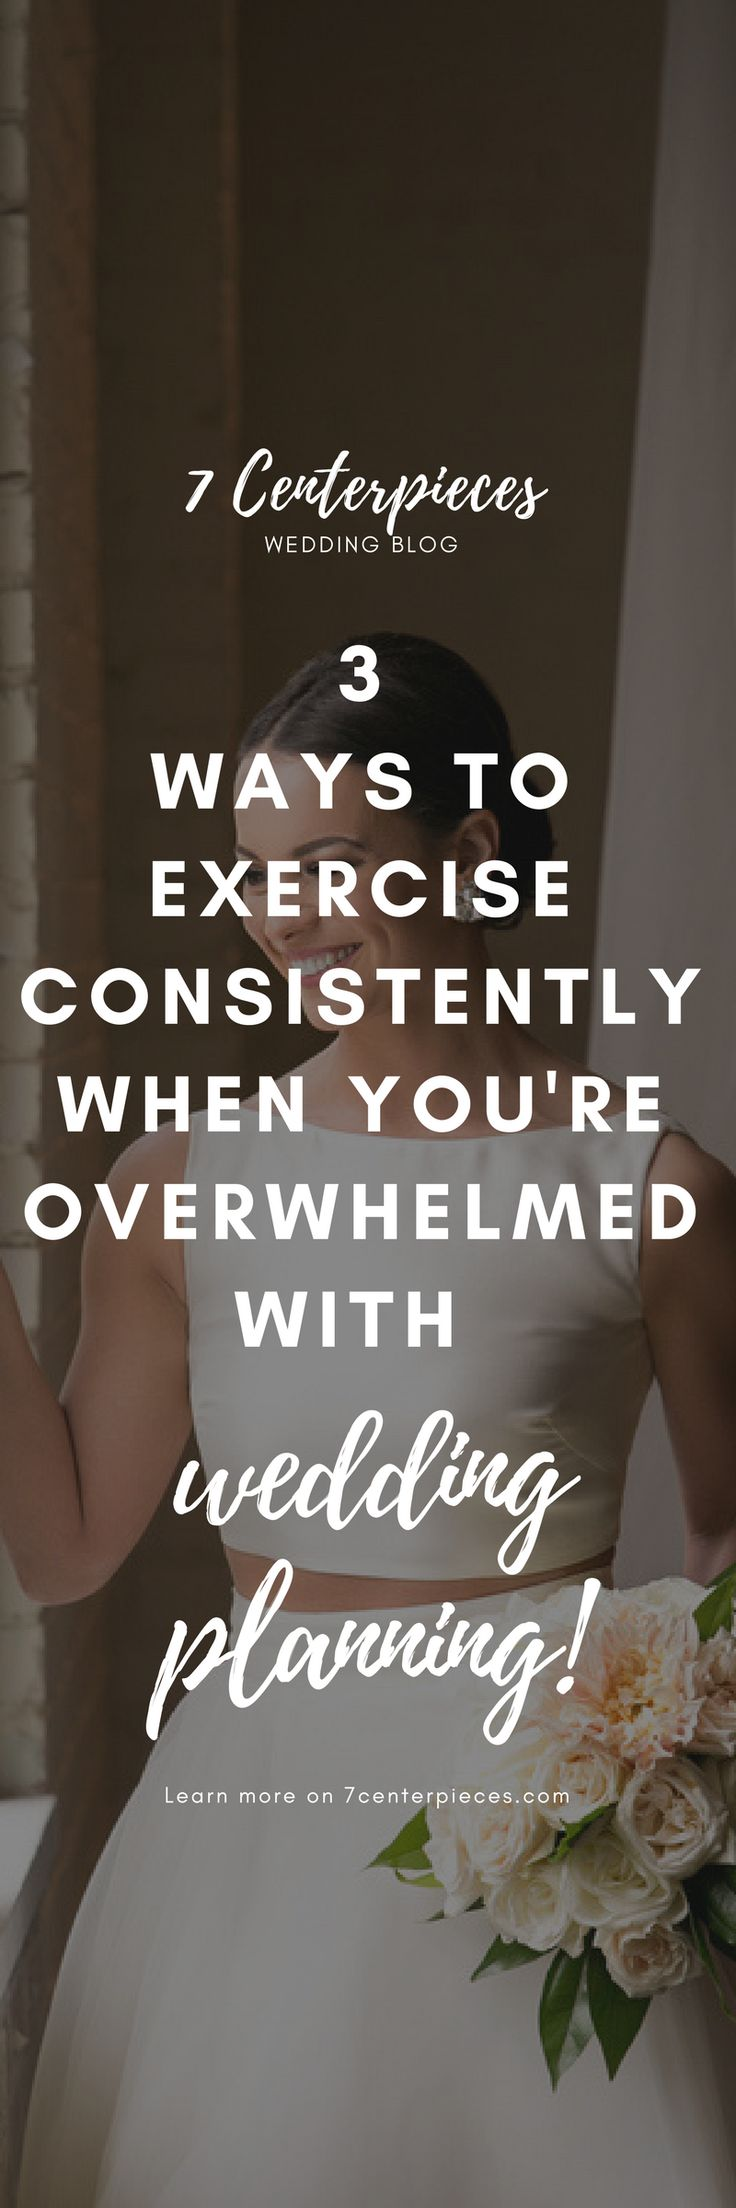 Struggling to keep your wedding dress workout routine? Exercising for your wedding day seem like a huge task considering all of your other wedding planning duties? Then you must check out this great article with tips and trips to make exercise a priority even when you're overwhelmed with wedding planning. It helped me get back on the wedding workout train! PIN IT NOW! You won't regret it. #weddingworkout #preweddingfitness #7centerpieces